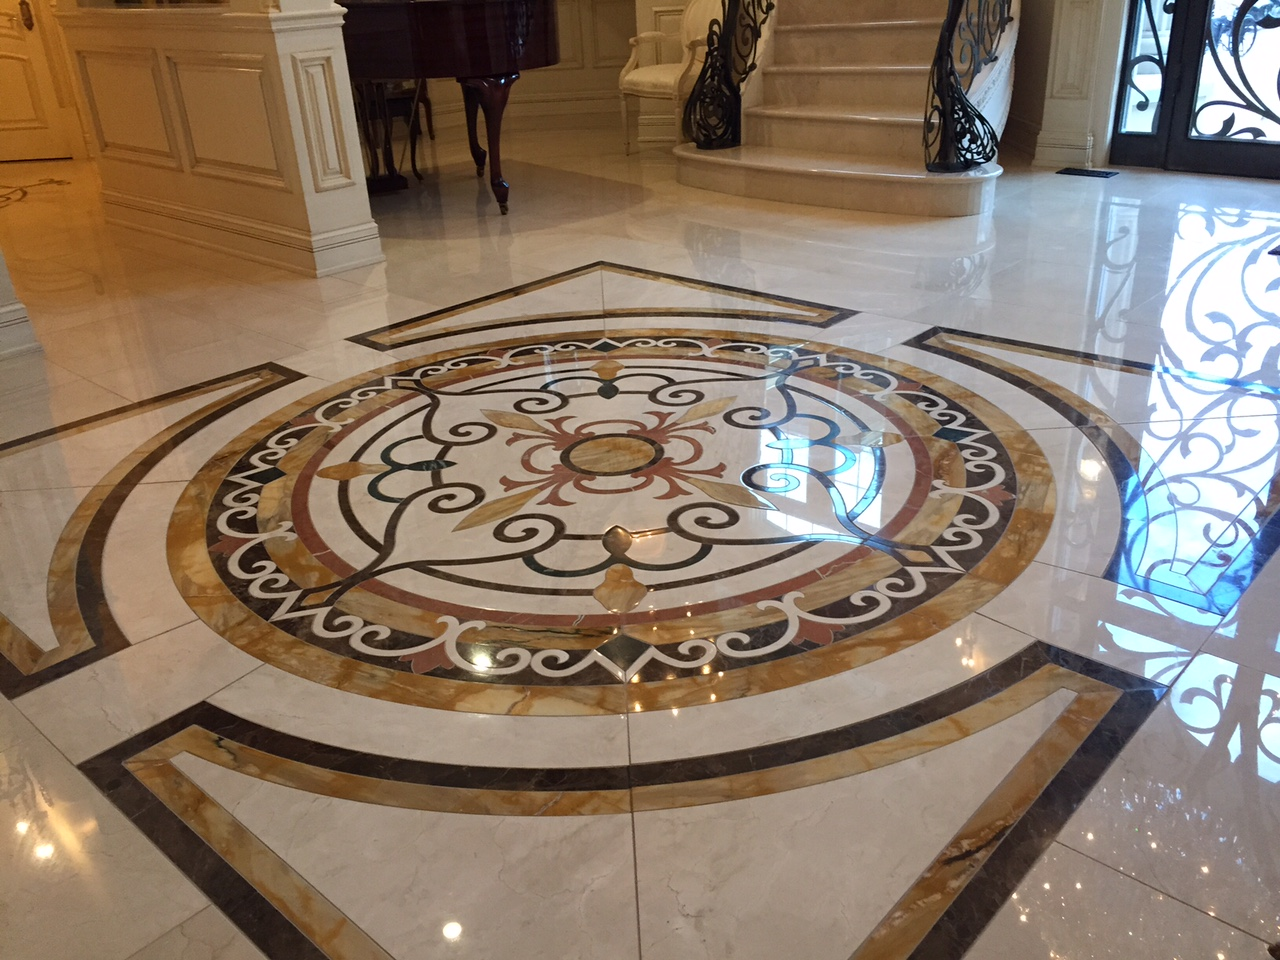 Marble Tile Flooring Ideas: New 50 Marble Floor Tile Designs For Living Room And